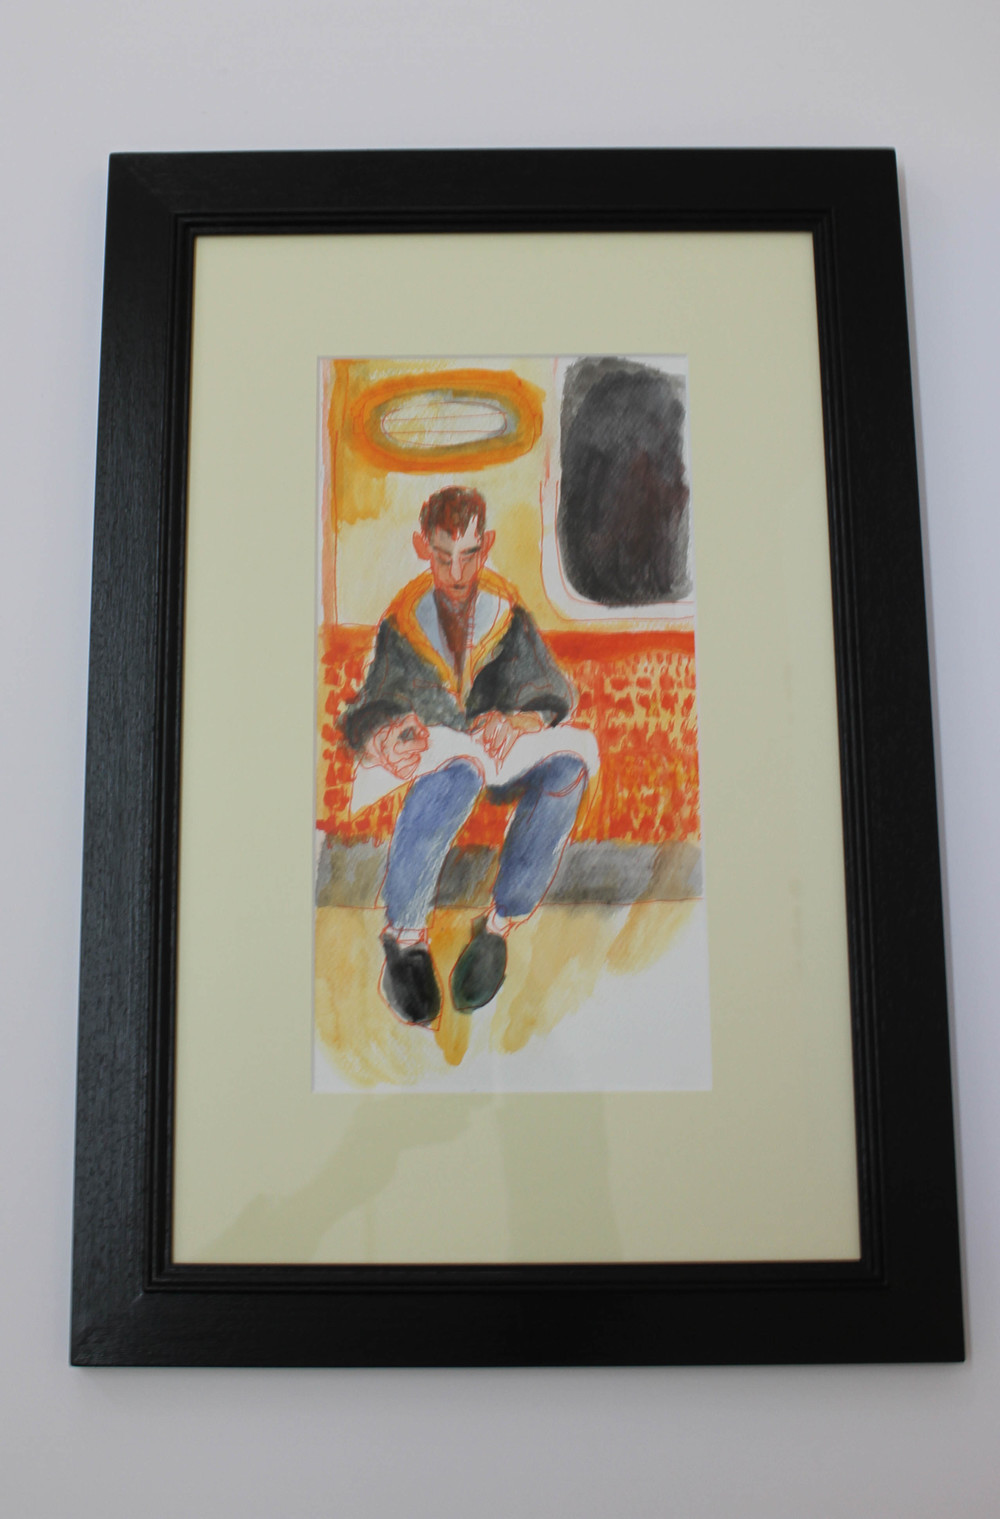 LOT 31 Sally Booth Man on Clockwork Orange Ink and Watercolour on Paper